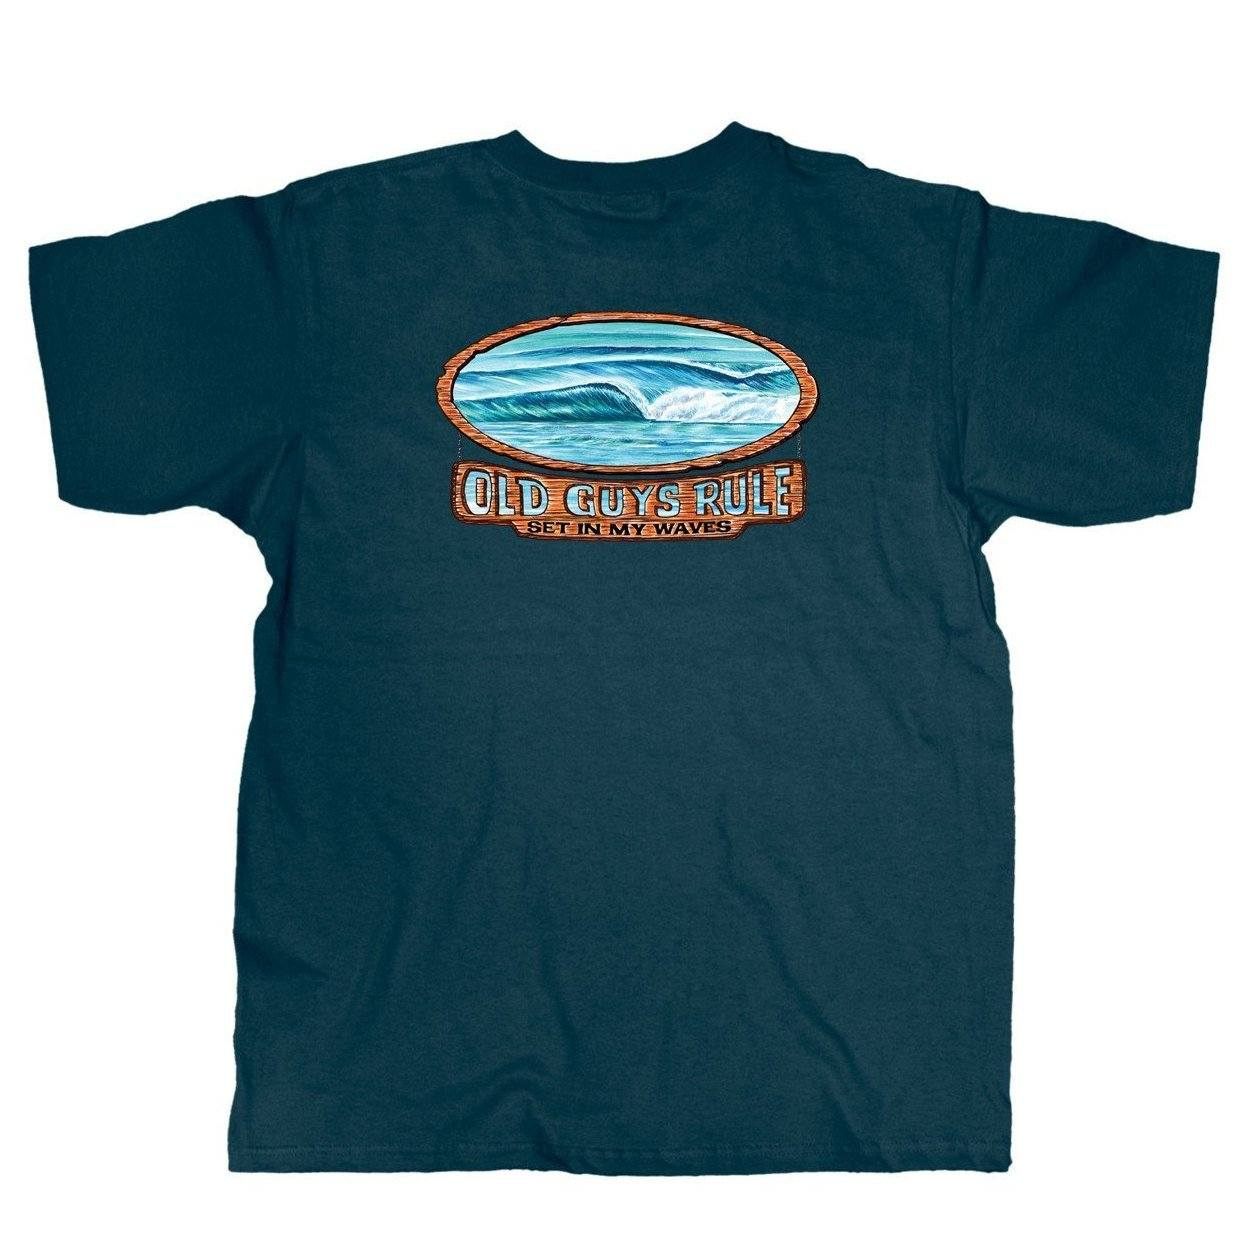 Old Guys Rule - Waves - Harbor Blue T-Shirt - Main View